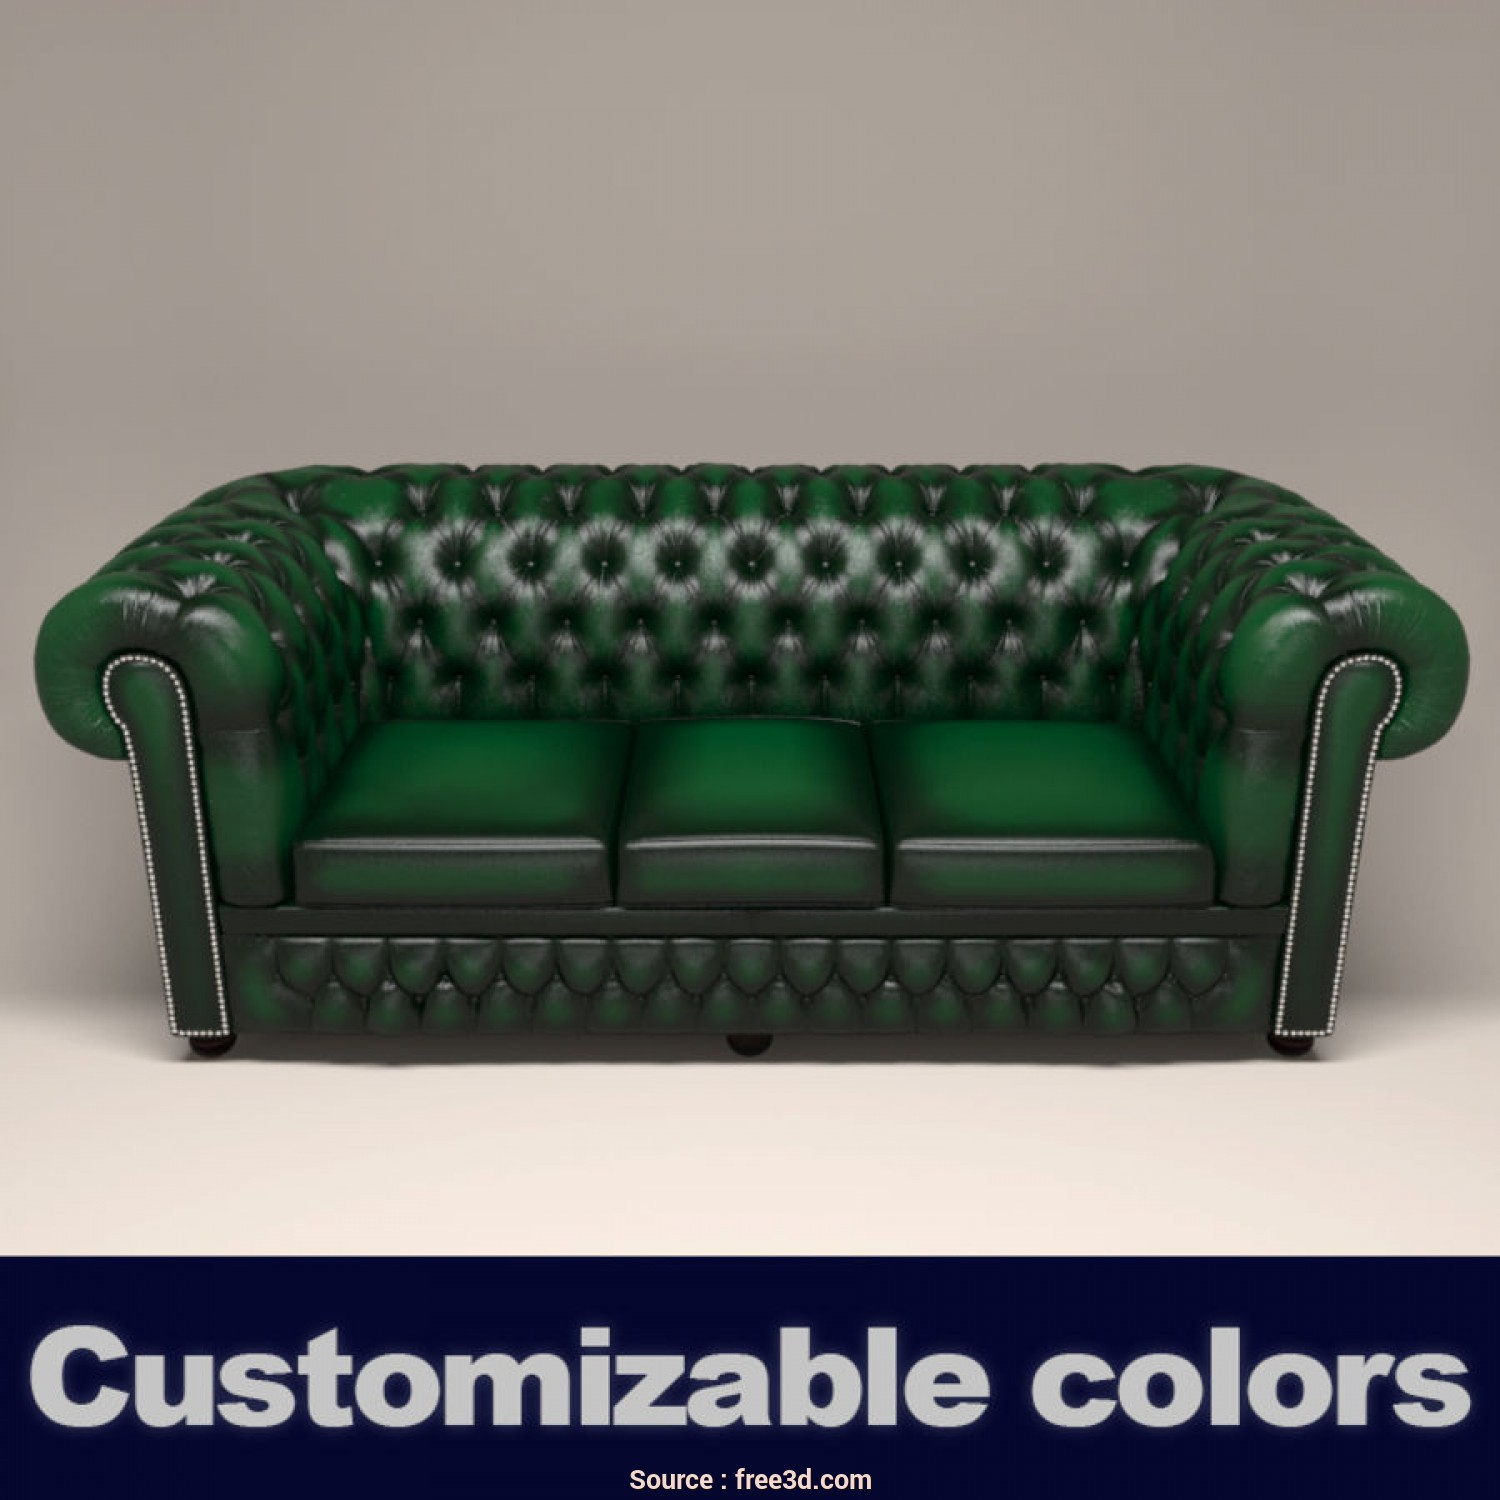 Divano Chesterfield, Max, Eccezionale Chesterfield Leather Sofa 3D Model,, .Obj .Fbx .Max, Free3D